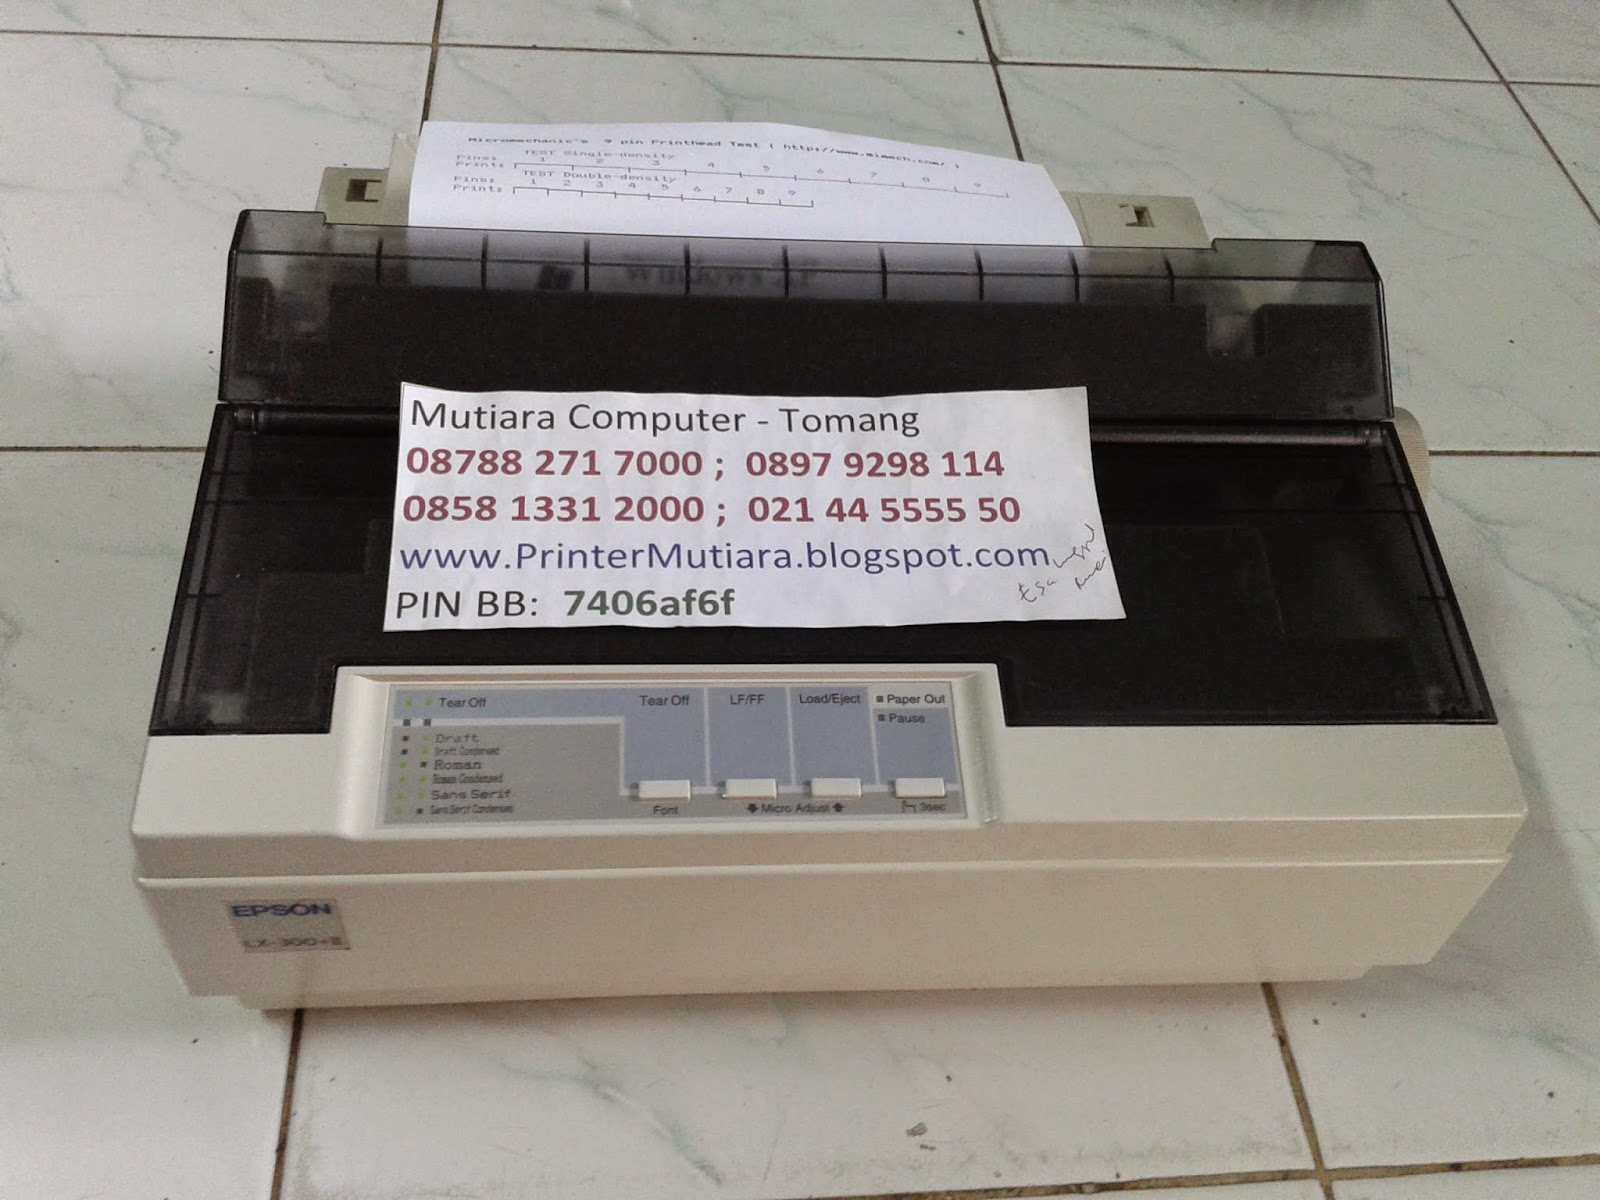 Tutup Mika Cover Printer Epson Lx300 Lq300 Ii Daftar Gear Rda Lx 300 Ll Ribbon Drive Assy Lq 2 Source Foto